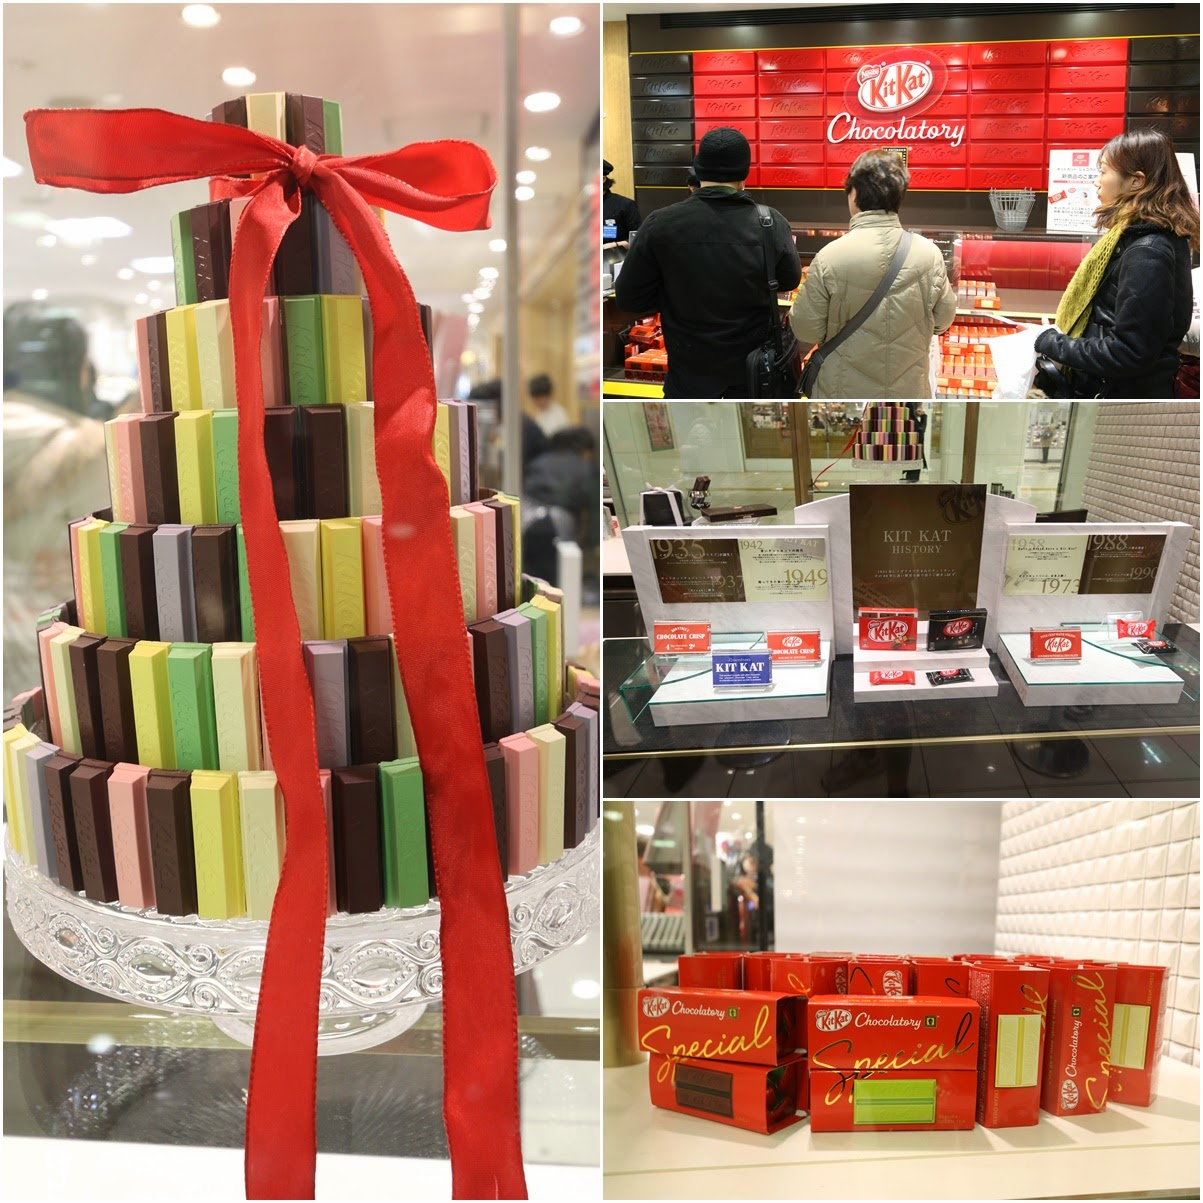 Kit Kat Chocolatory Store with variety special flavours such as green tea, cherry blossom etc at Ikebukuro in Tokyo, Japan